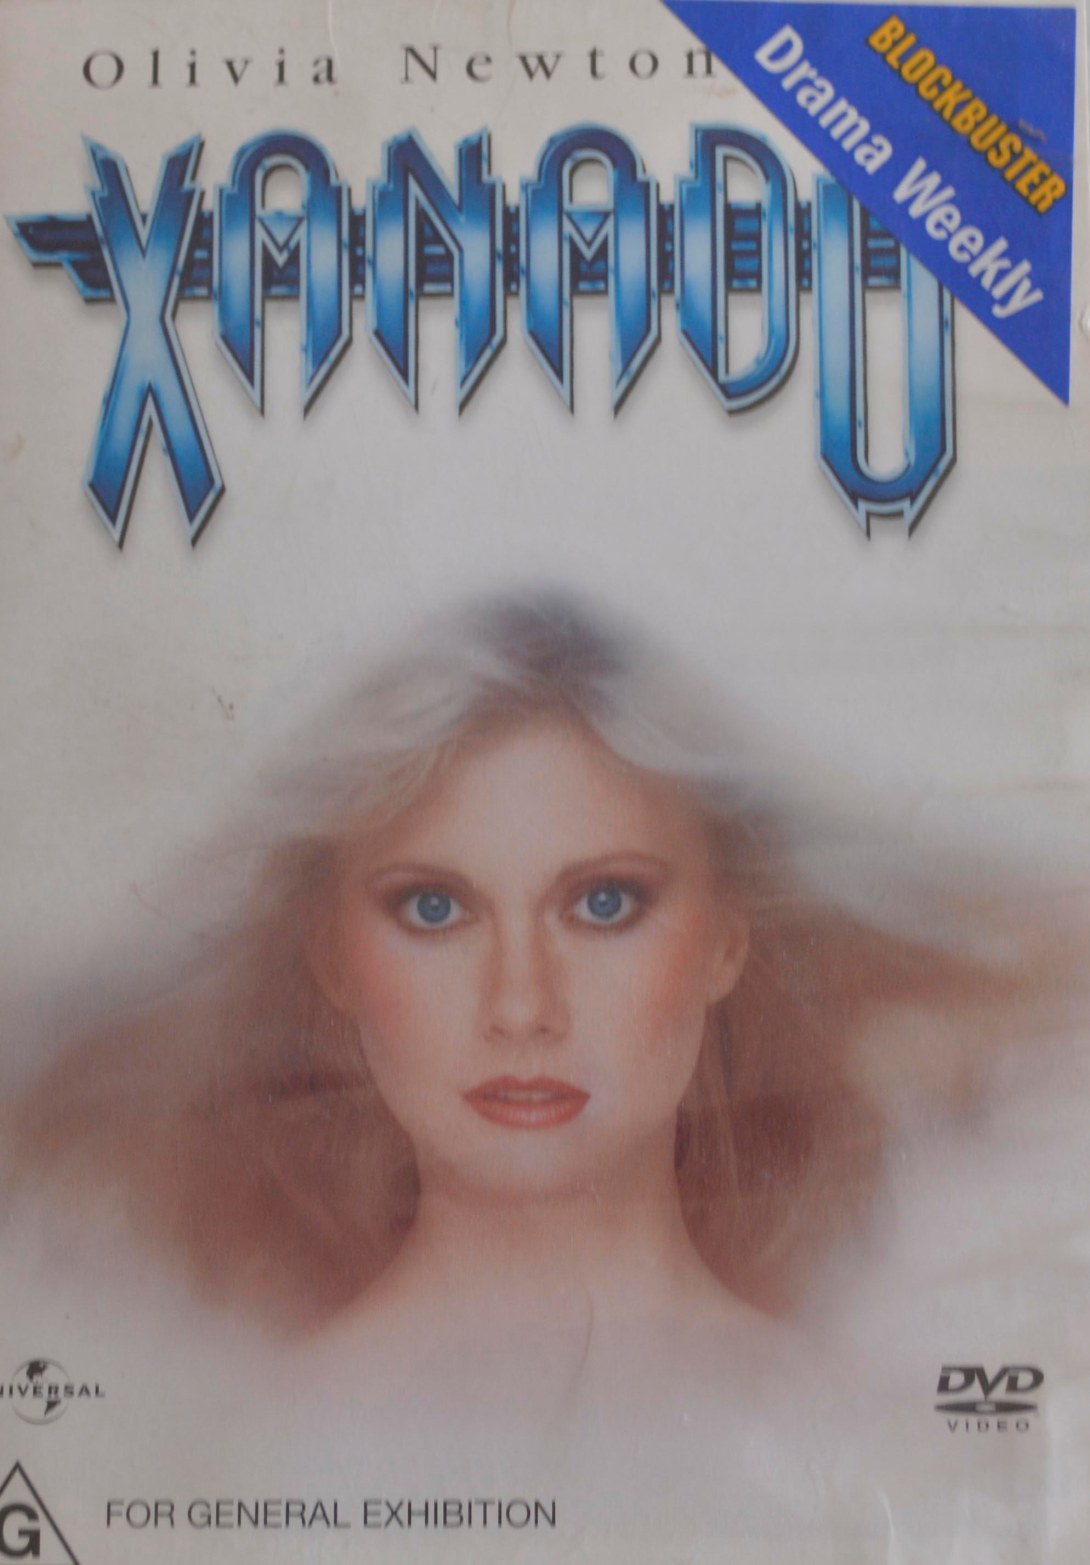 Xanadu movie review be kitschig blog Berlin